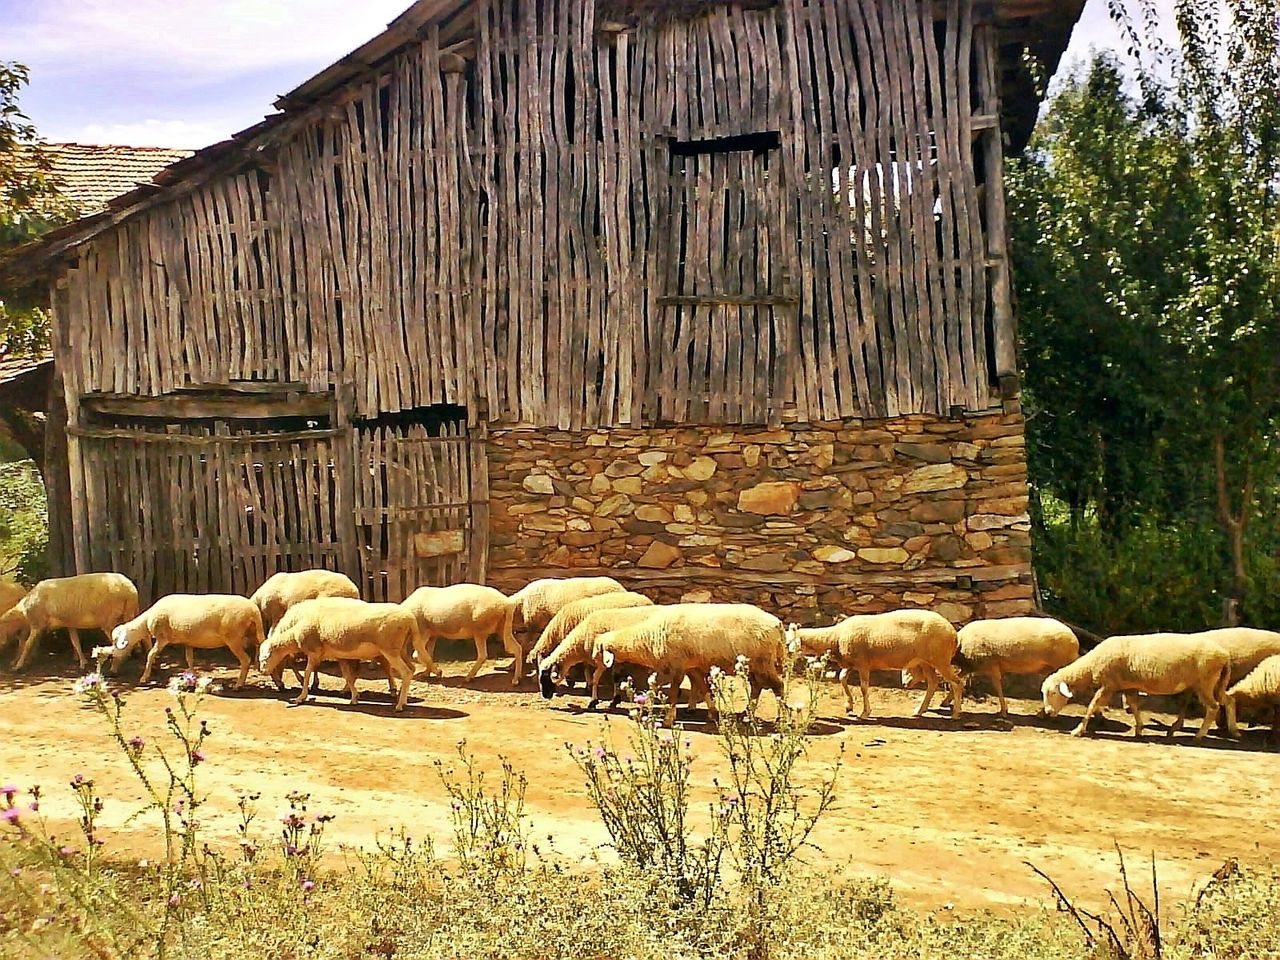 Sheeps Animal Themes No People Nature Outdoors Domestic Animals Beauty In Nature Sheeps Sheep Farm